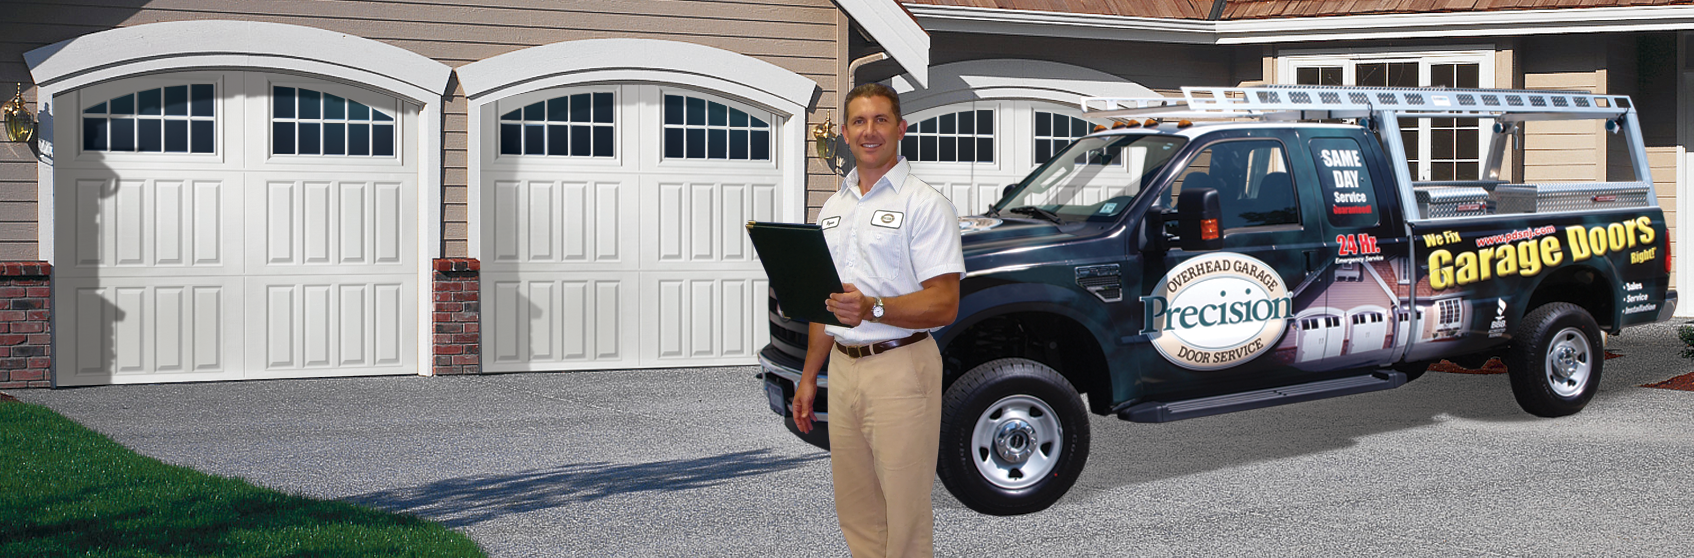 Precision Truck  sc 1 th 129 & Precision Garage Door Long Island | Repair Openers \u0026 New Garage Doors